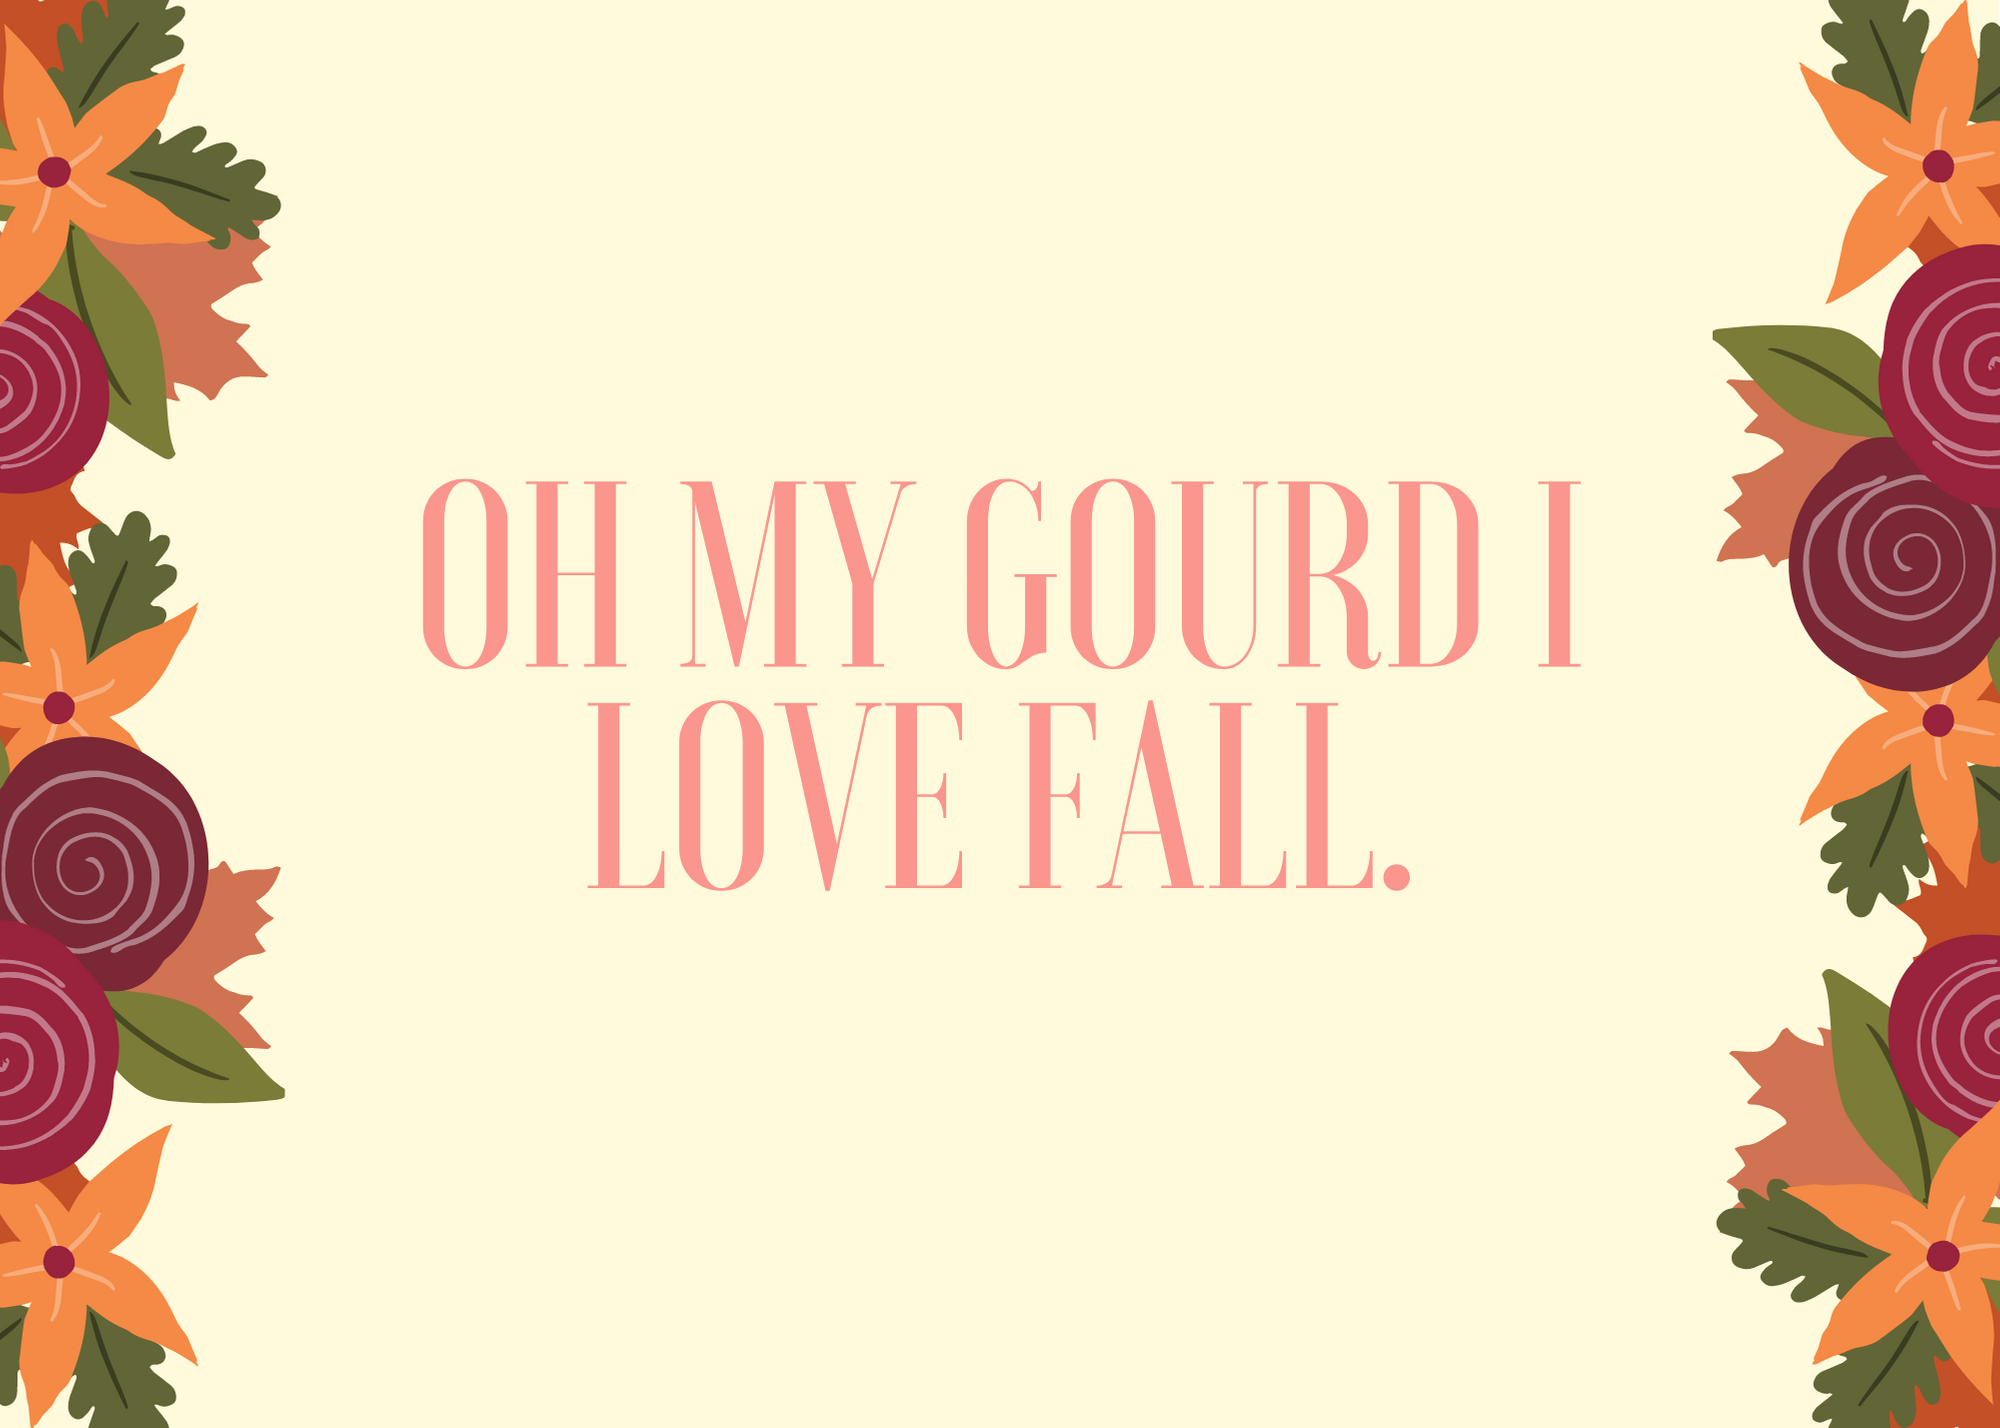 Funny Fall Instagram Caption About Gourds